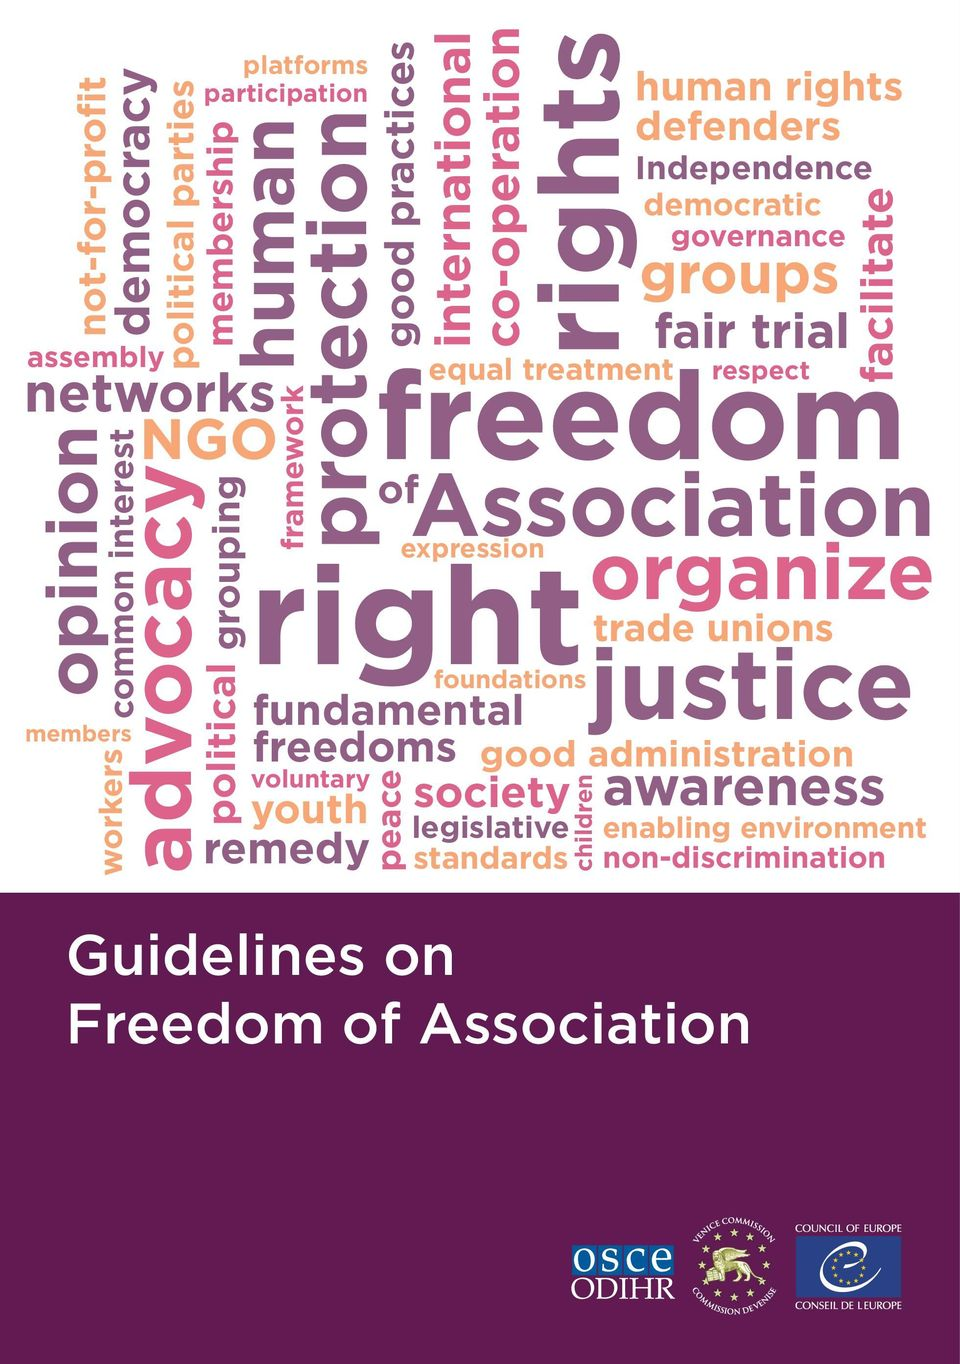 right fundamental freedoms voluntary youth society remedy peace foundations legislative standards Independence democratic governance Guidelines on Freedom of Association